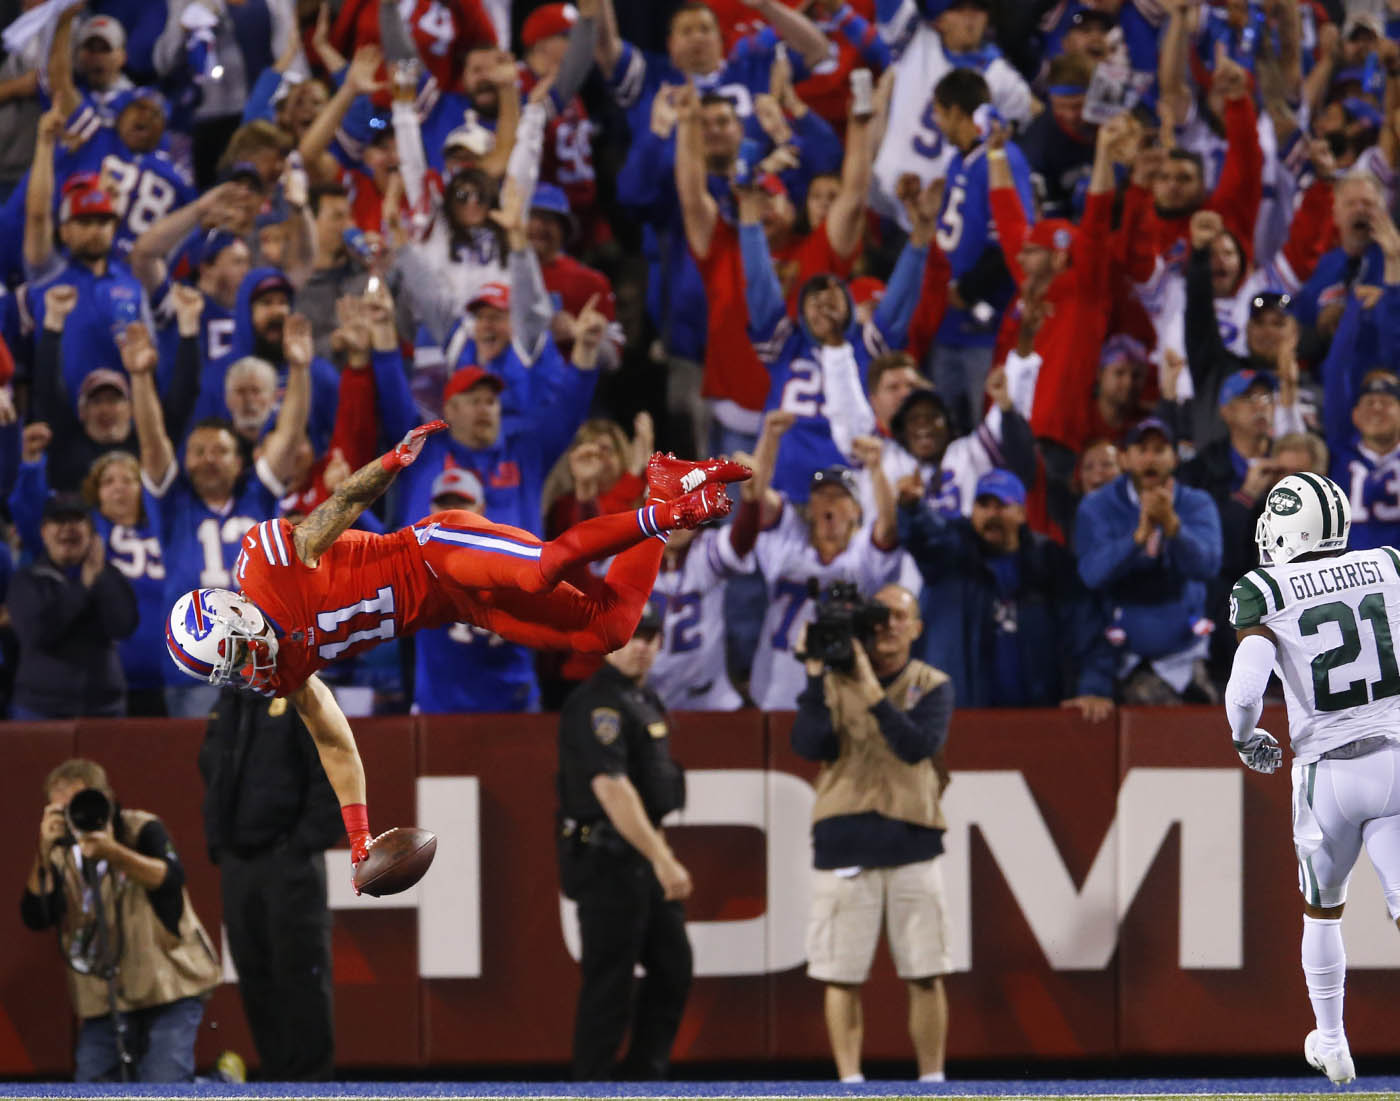 Pictures, Buffalo Bills wide receiver Greg Salas flips into the end zone for a 71-yard touchdown reception against the New York Jets during the third quarter at New Era Field in Orchard Park, N.Y. on Thursday, Sept. 15, 2016. (Mark Mulville/Buffalo News)